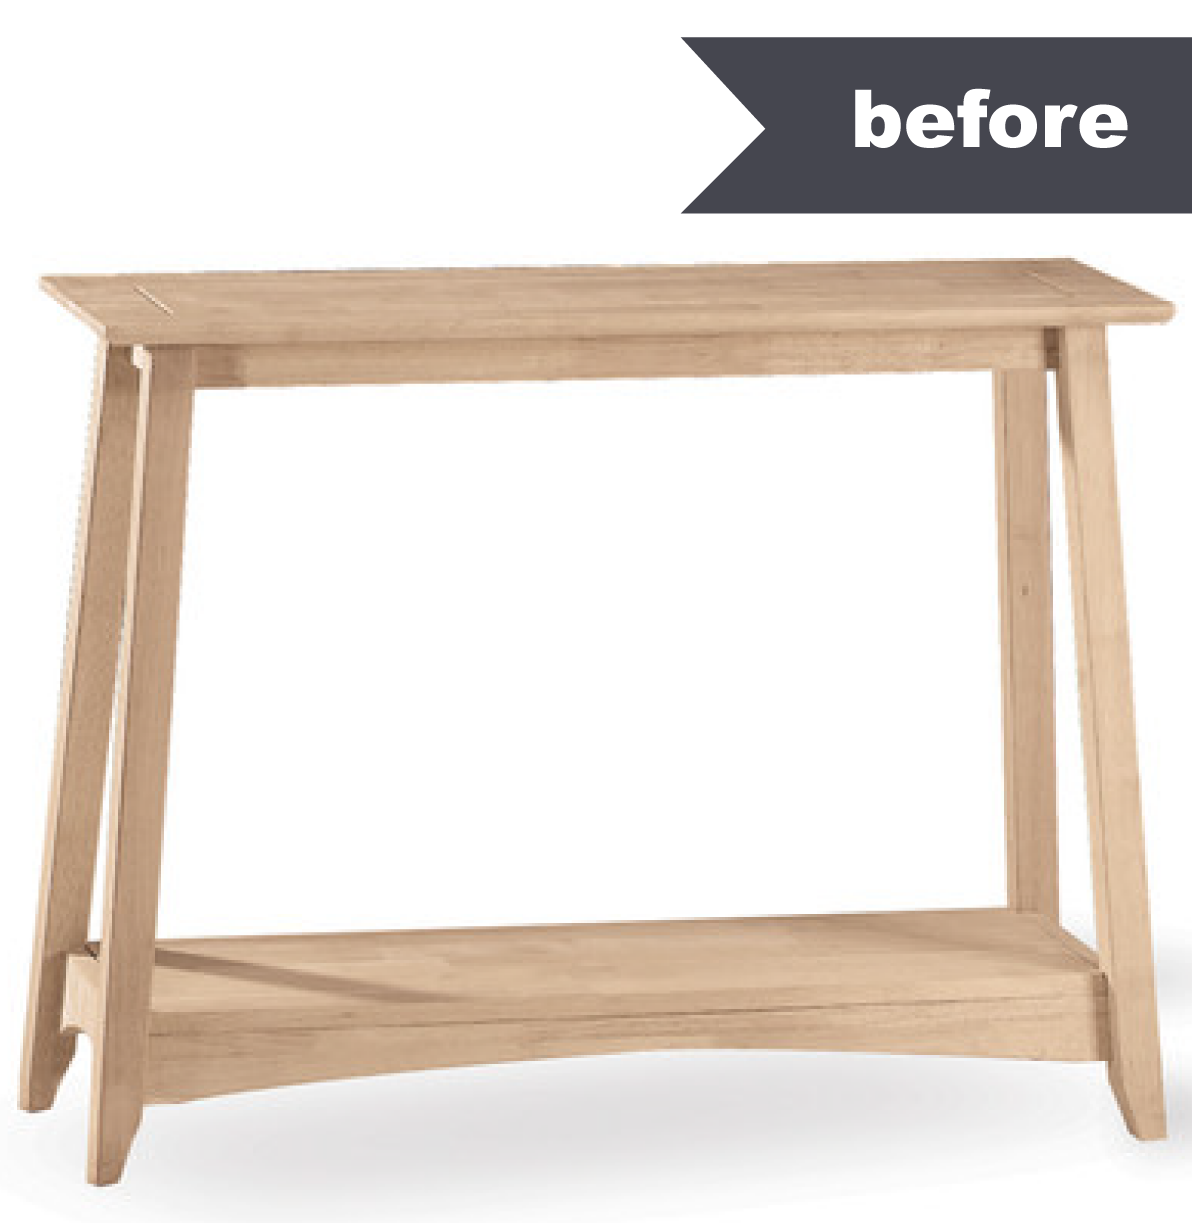 Christina Williams Diy Entry Table